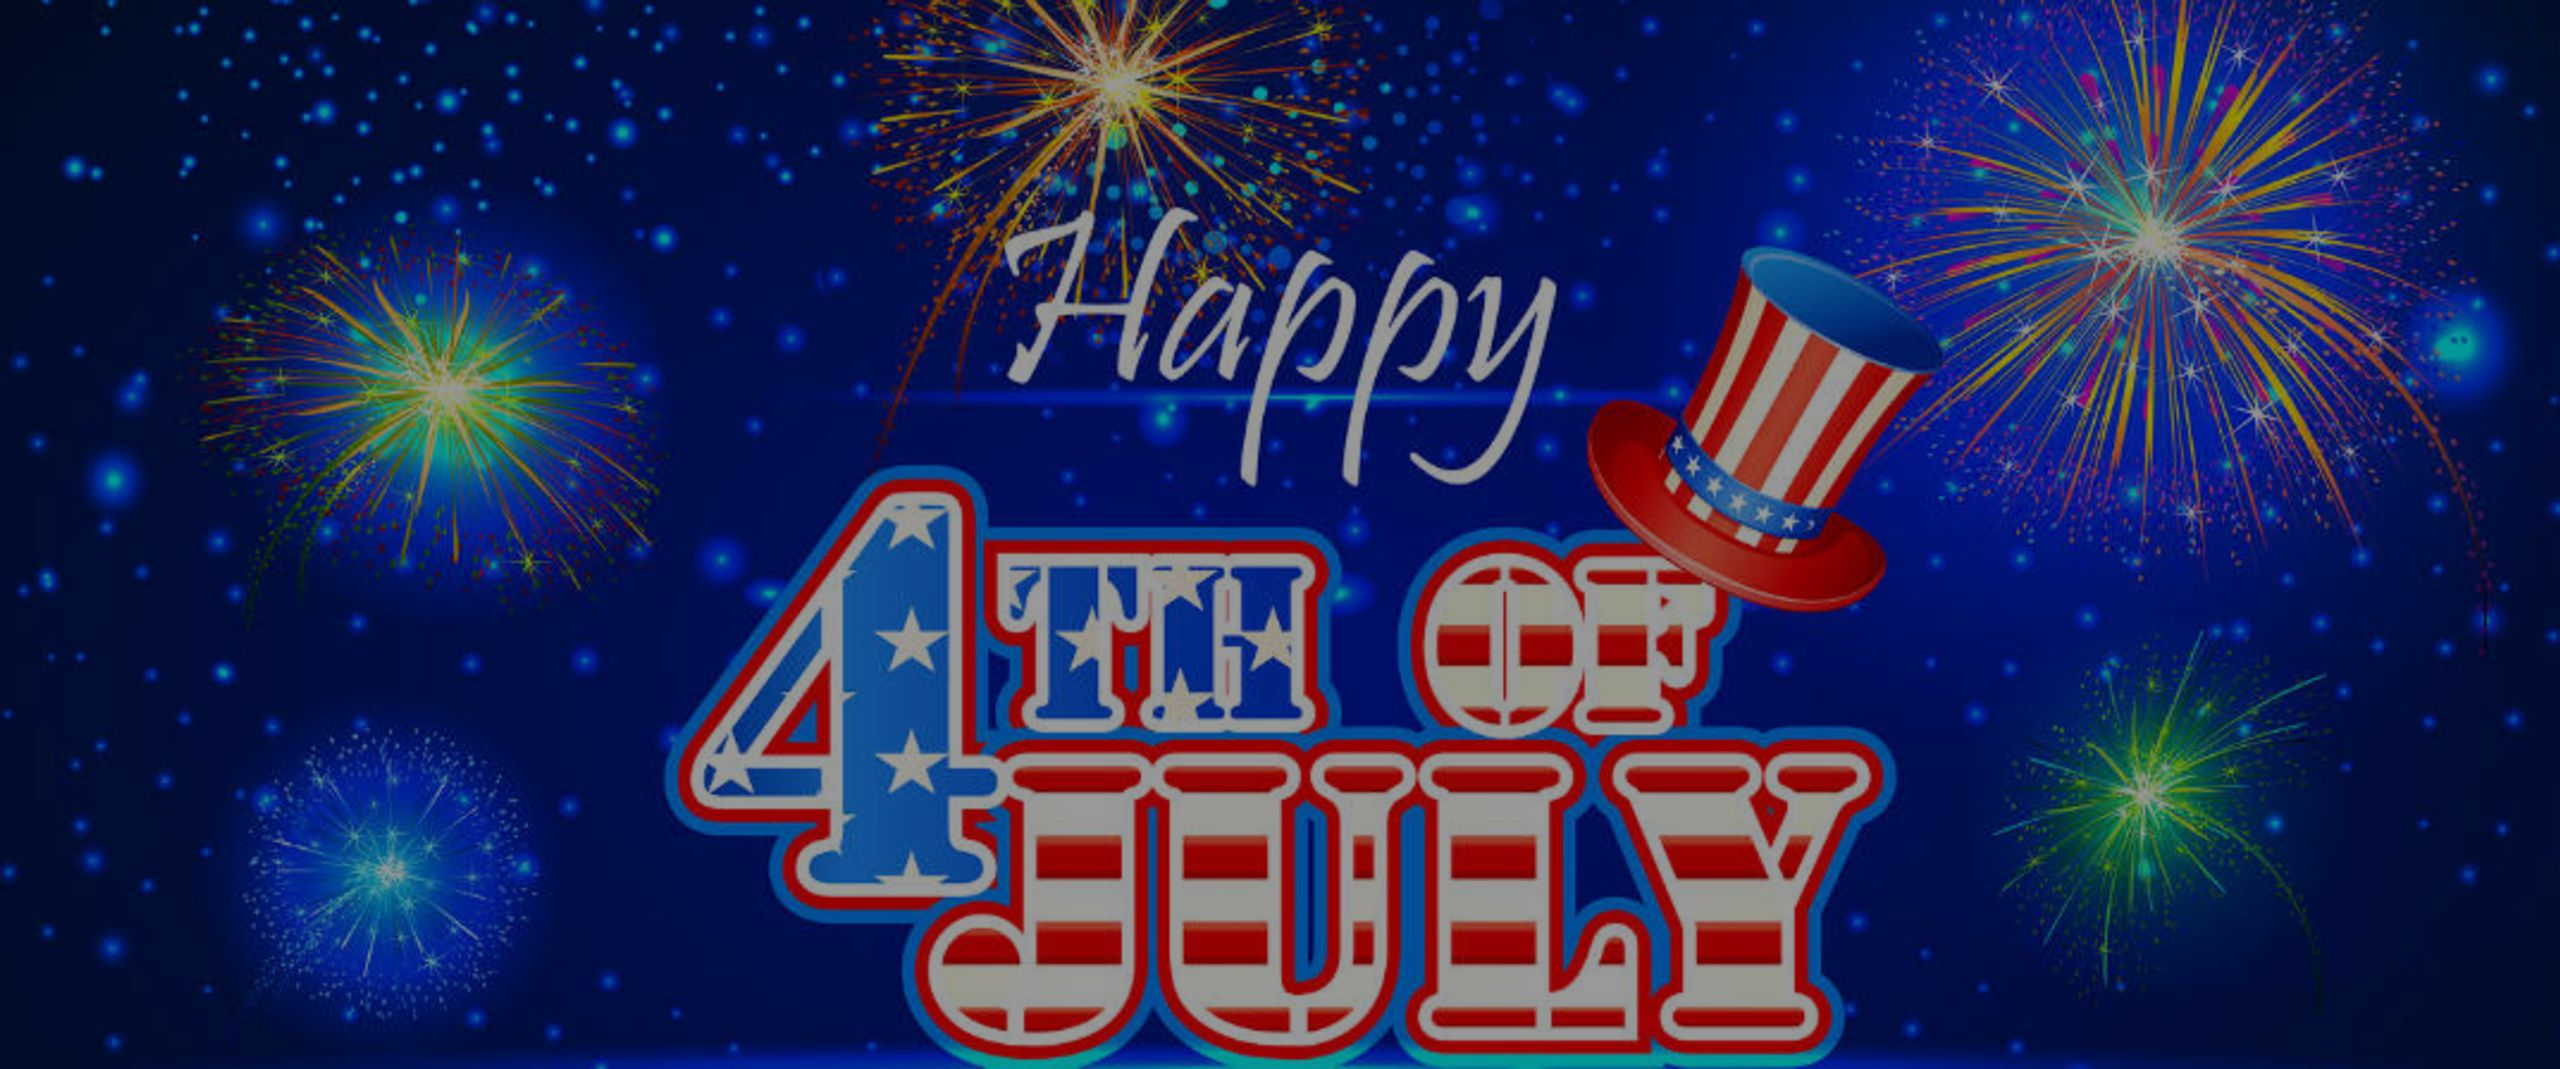 Happy 4th of July 2019 From The Tammy Mrotek Team!